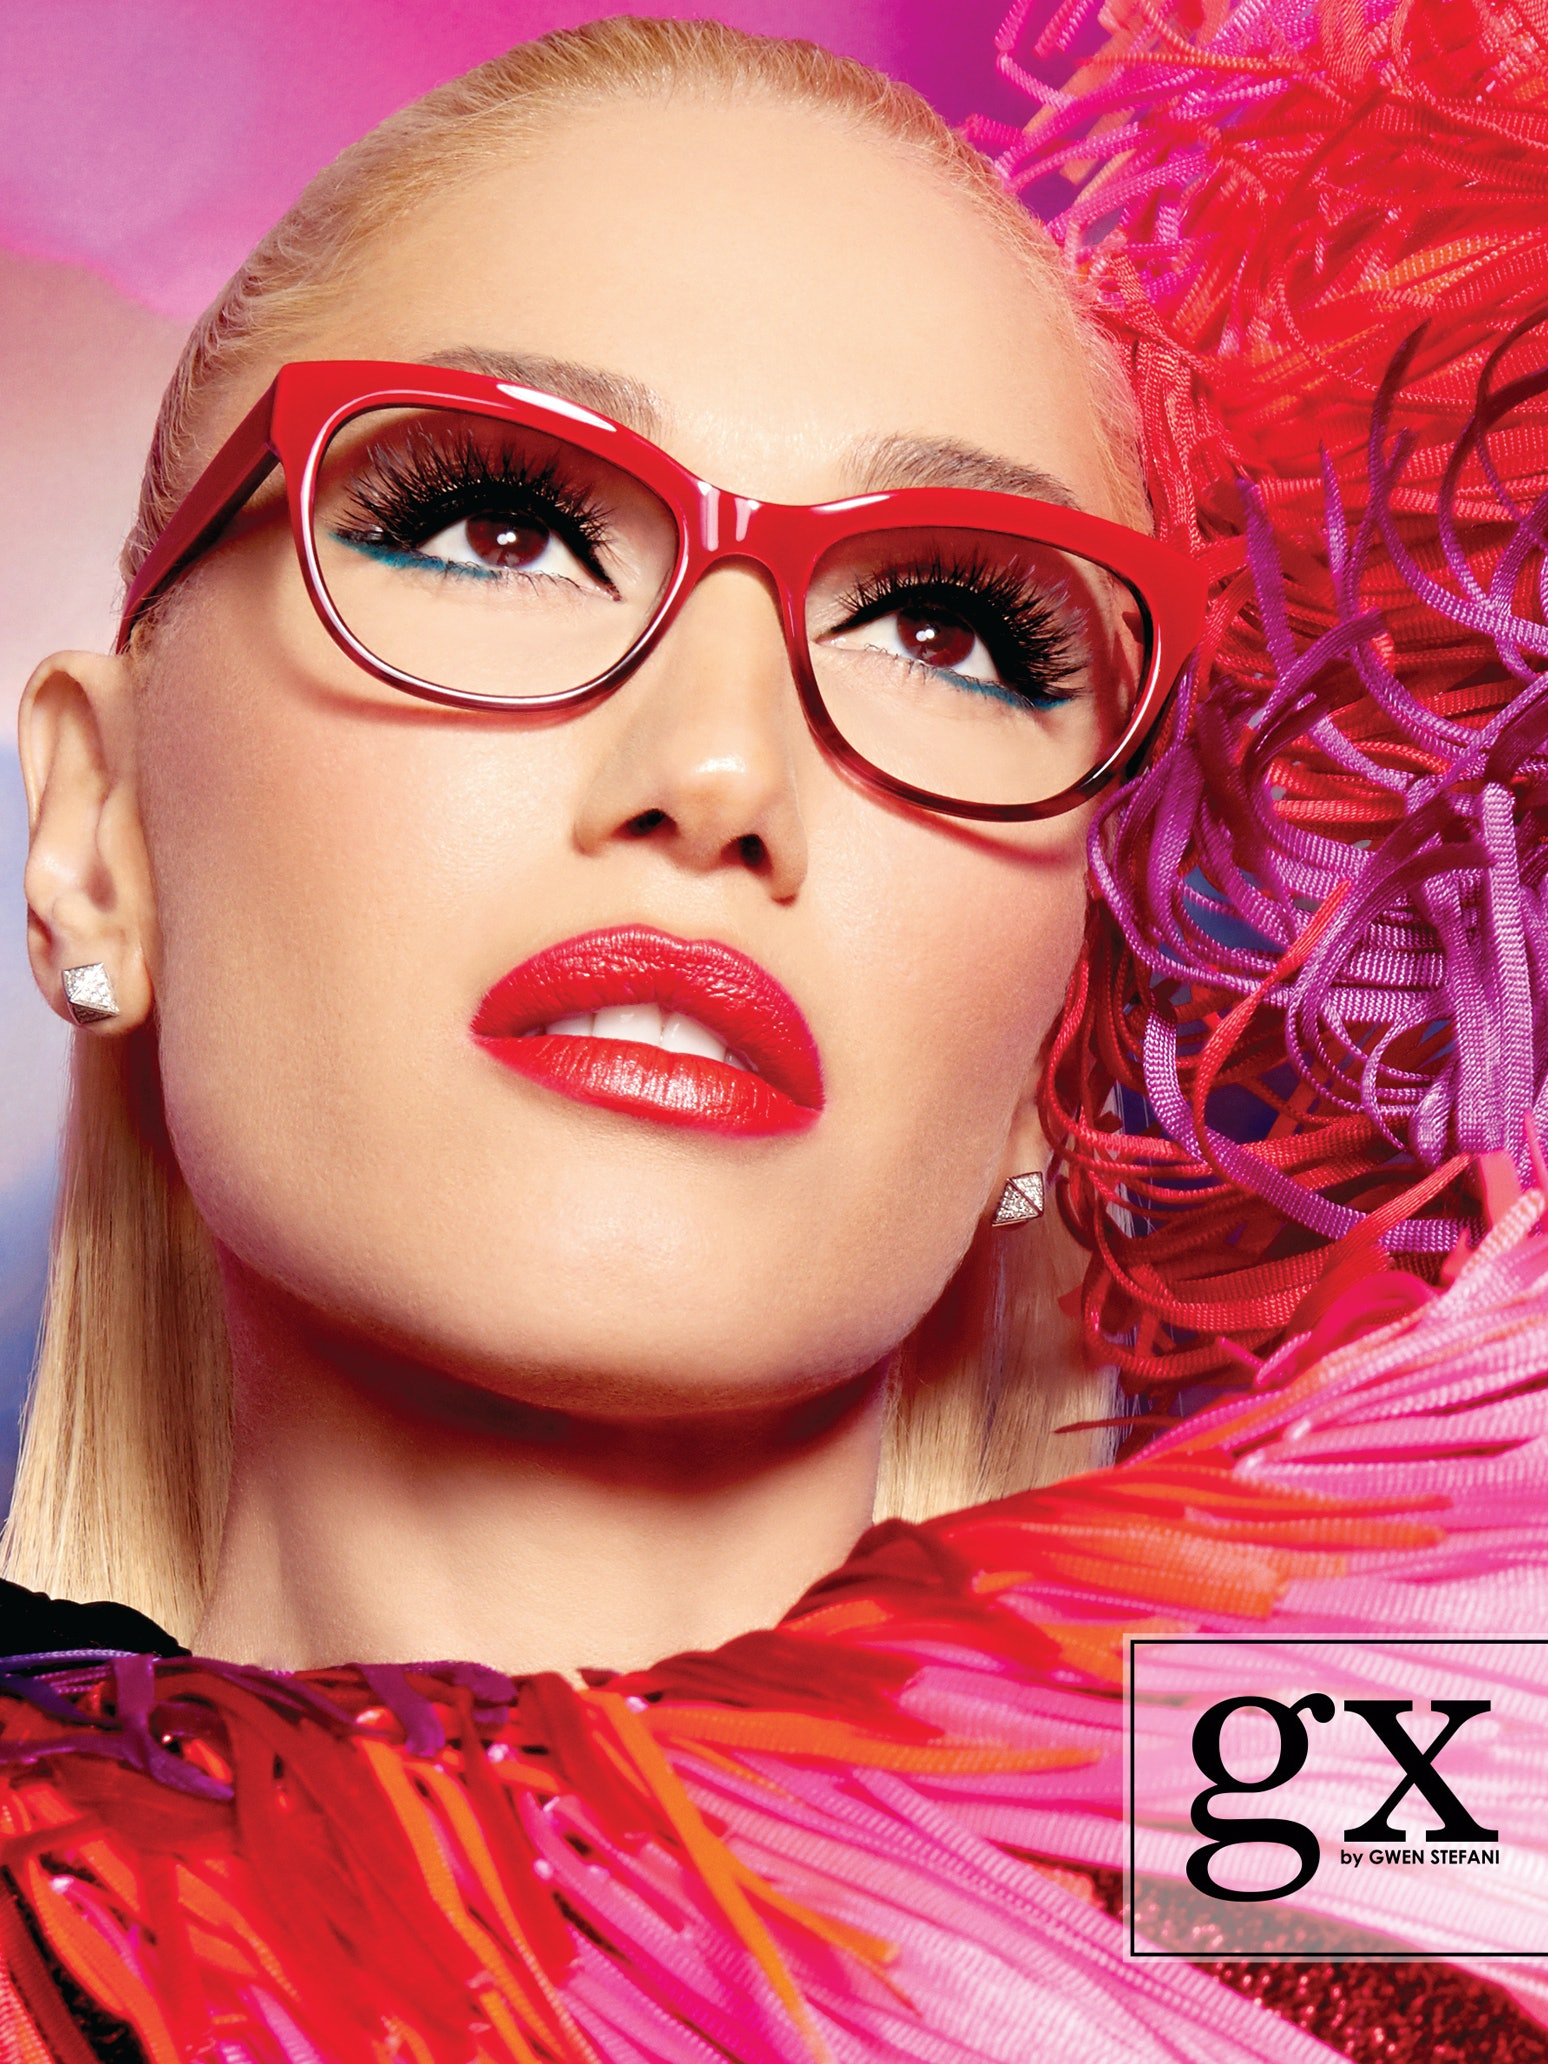 57c627ac1b Gwen Stefani s Eyewear Collection Is Inspired By The Glasses She s Always  Wanted To Wear